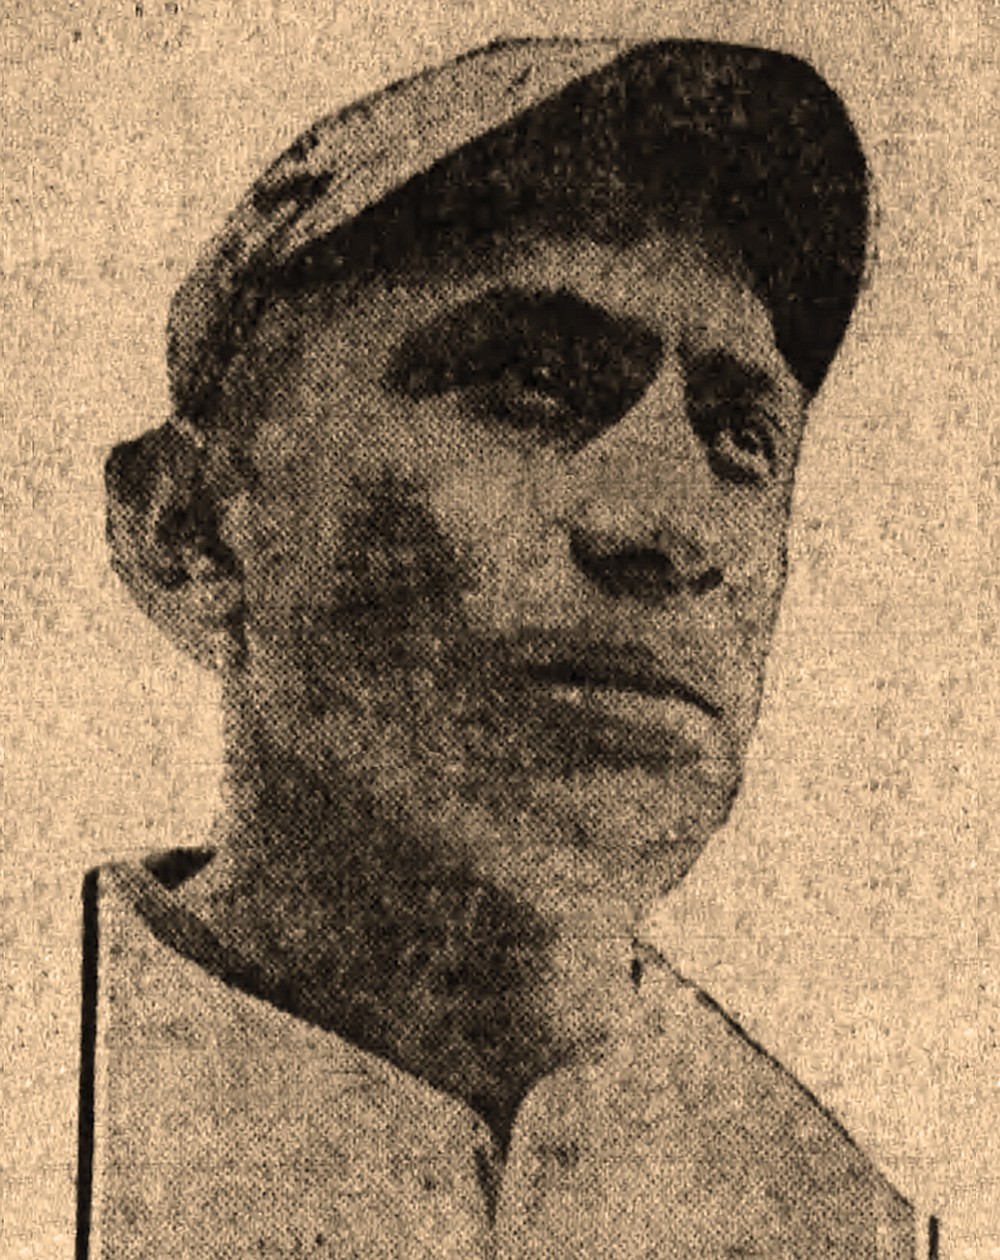 Moses Yellow Horse was a pitcher for the Little Rock Travelers ball club when his photo appeared in the June 10, 1920, Arkansas Gazette. (Arkansas Democrat-Gazette)